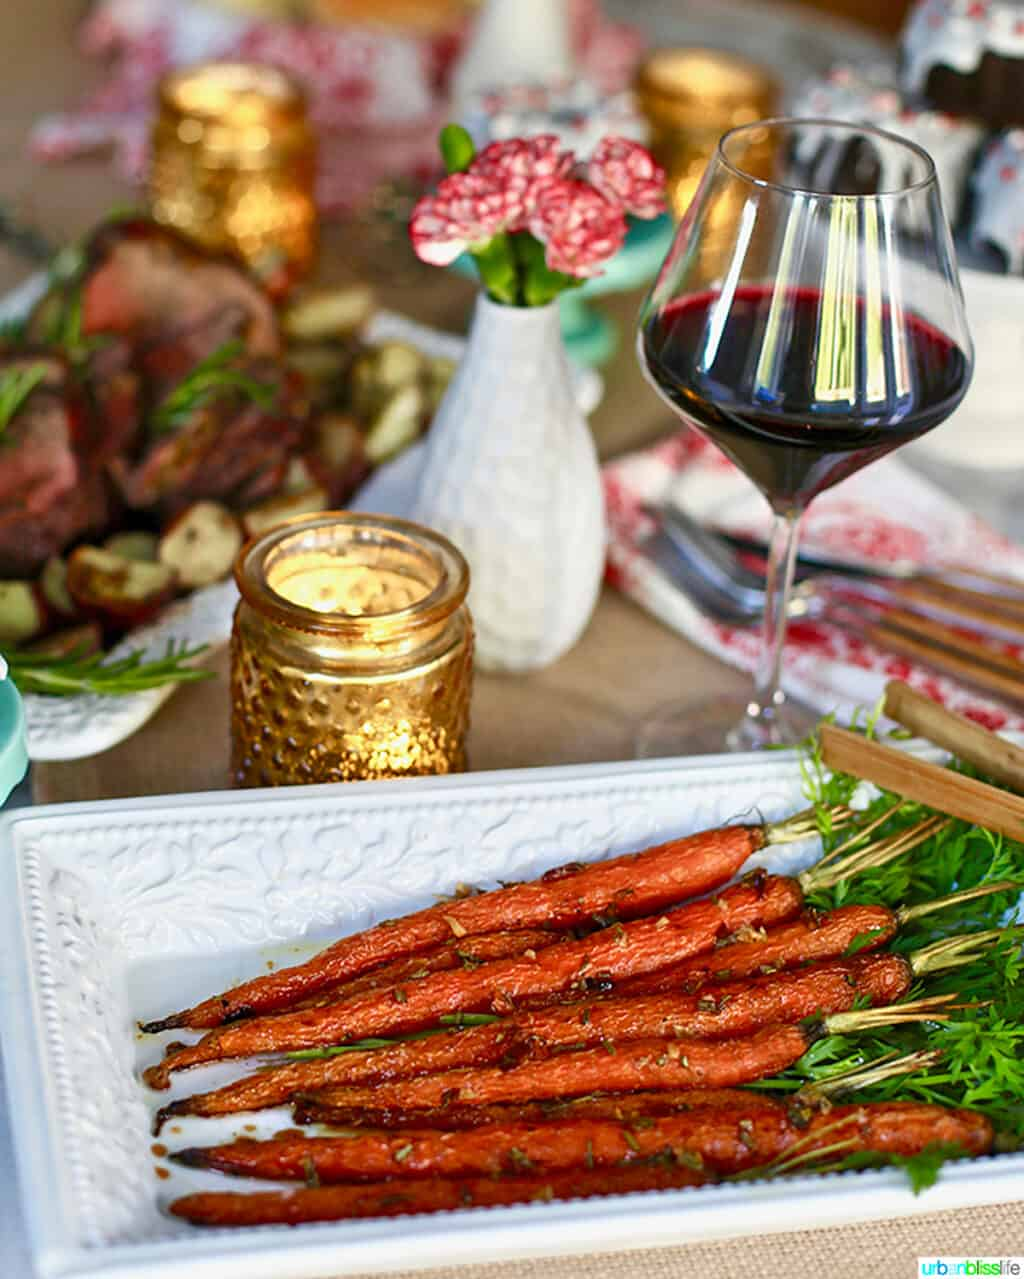 plate of garlic rosemary roasted glazed carrots on holiday table with wine